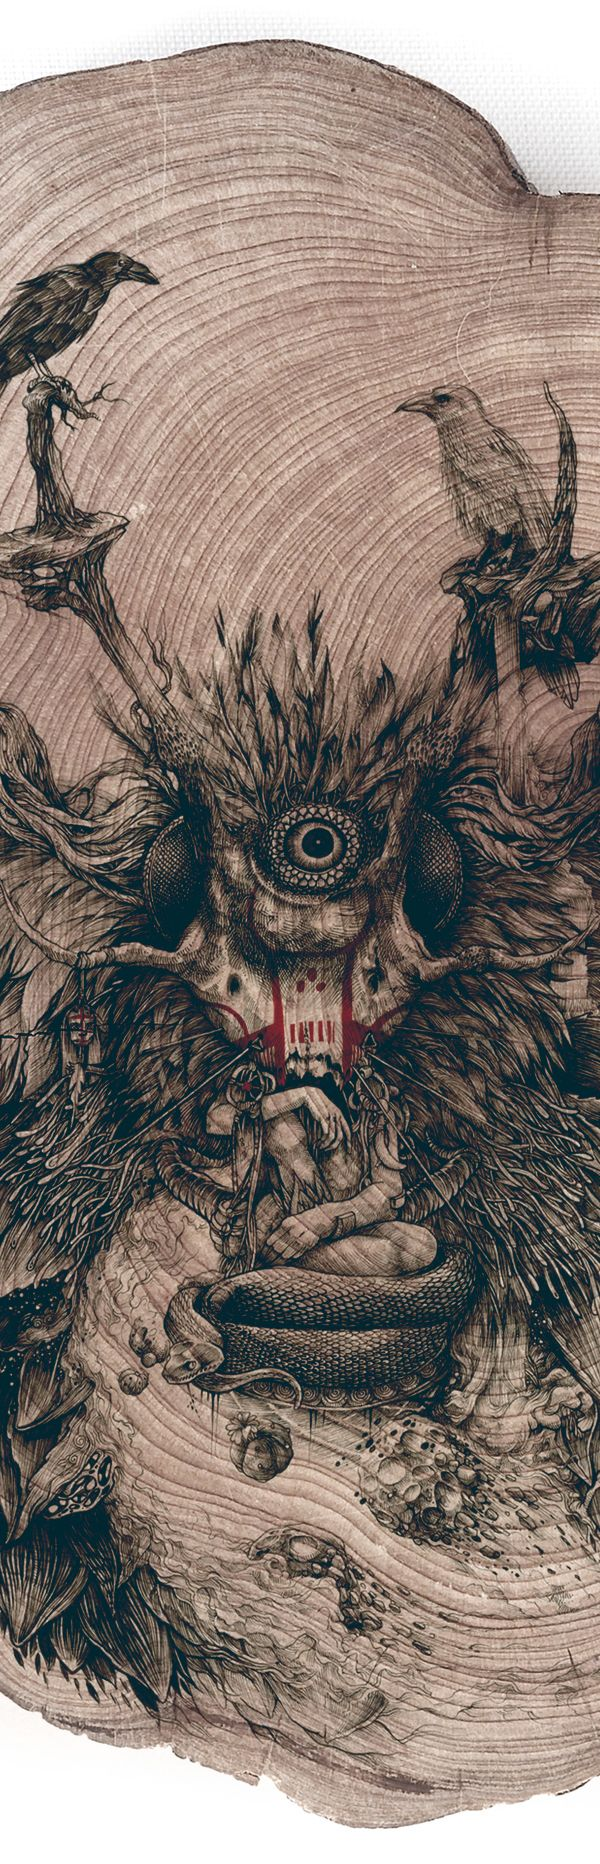 CHAMAN by DZO Olivier on Behance #wood #illustration #drawing